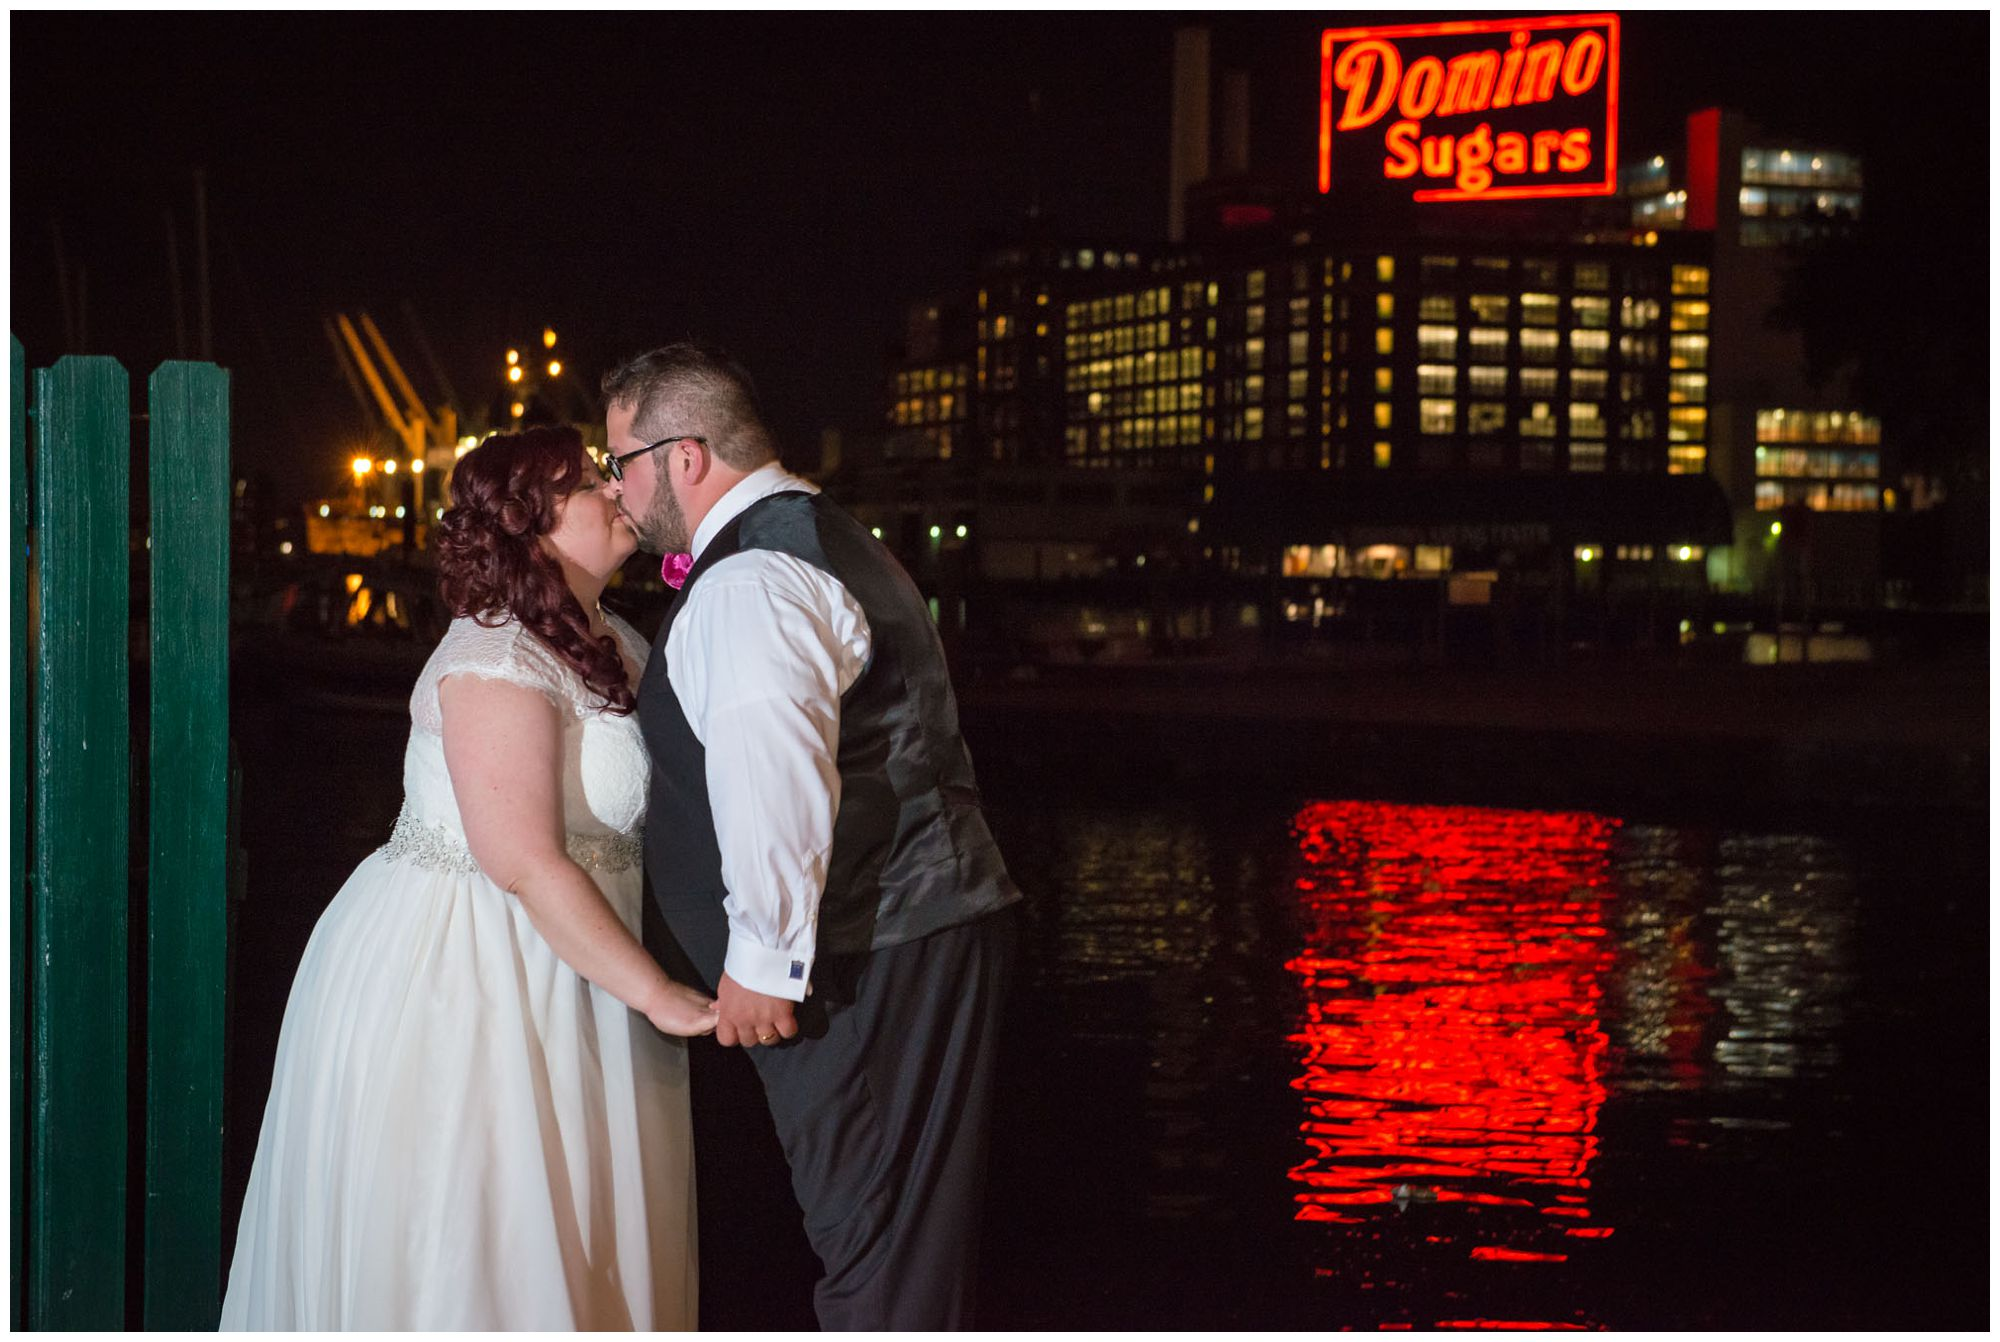 Bride and groom at nighttime in front of Domino Sugar factory in Baltimore